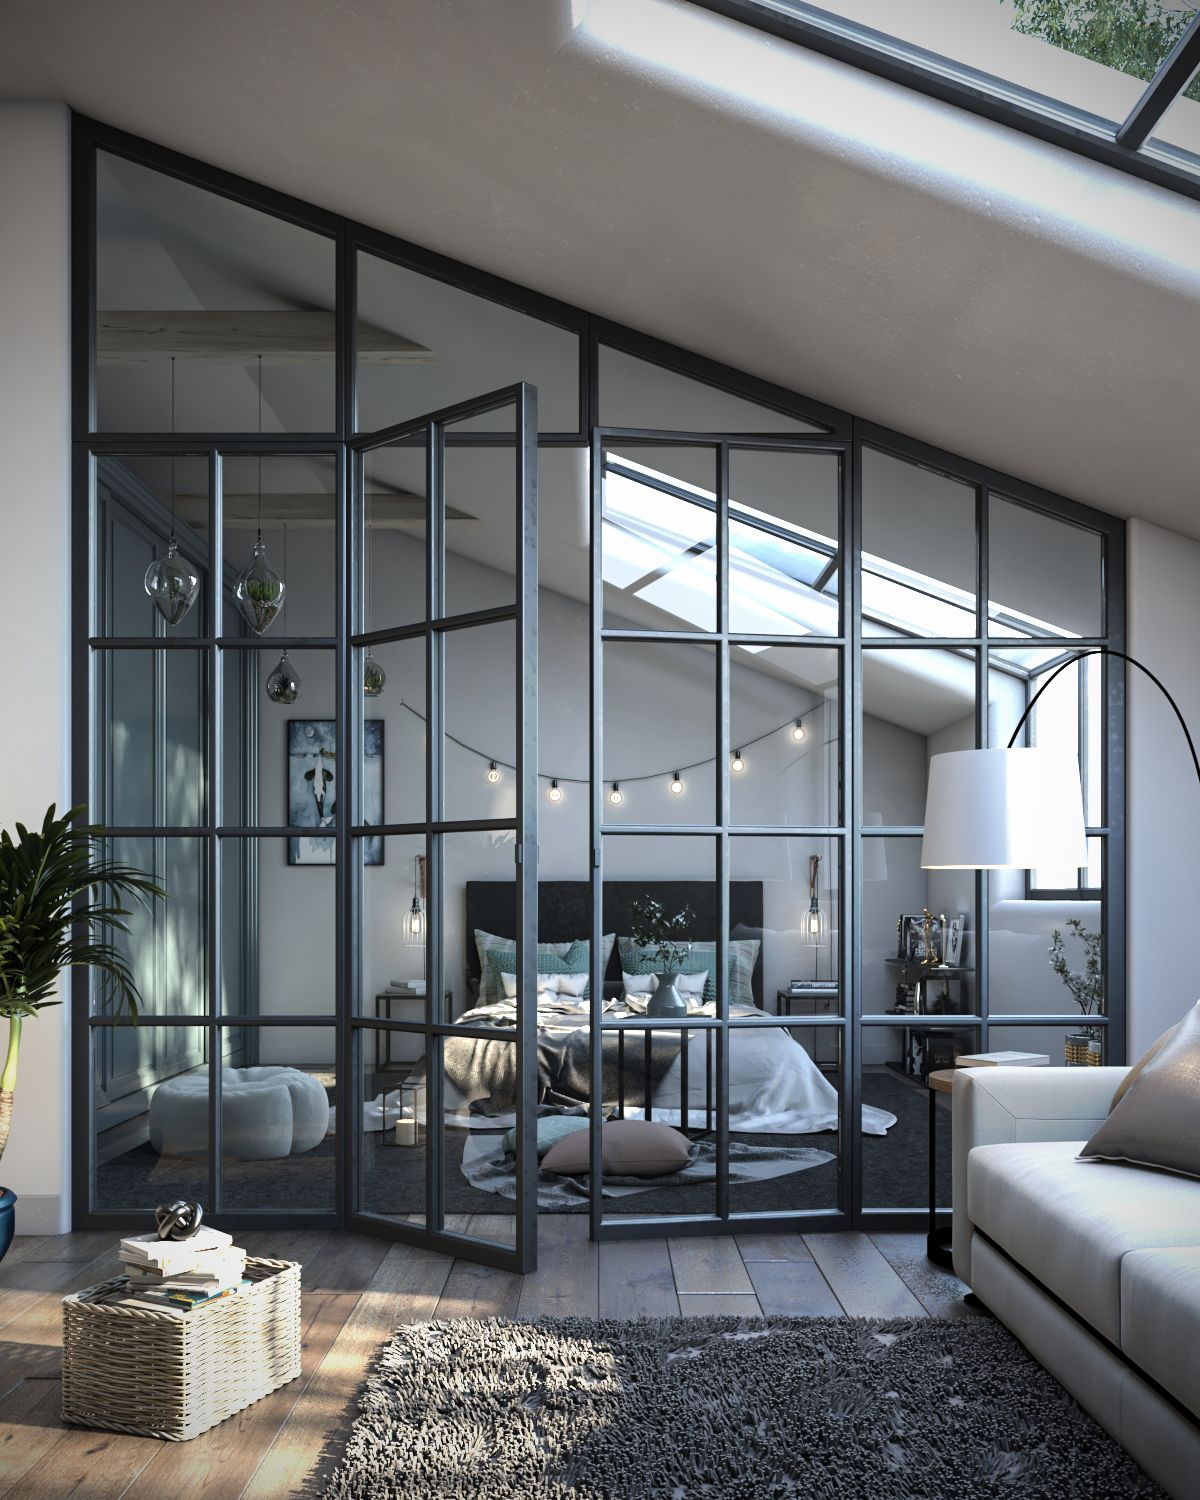 Photo of Open glass window loft bedroom inspo